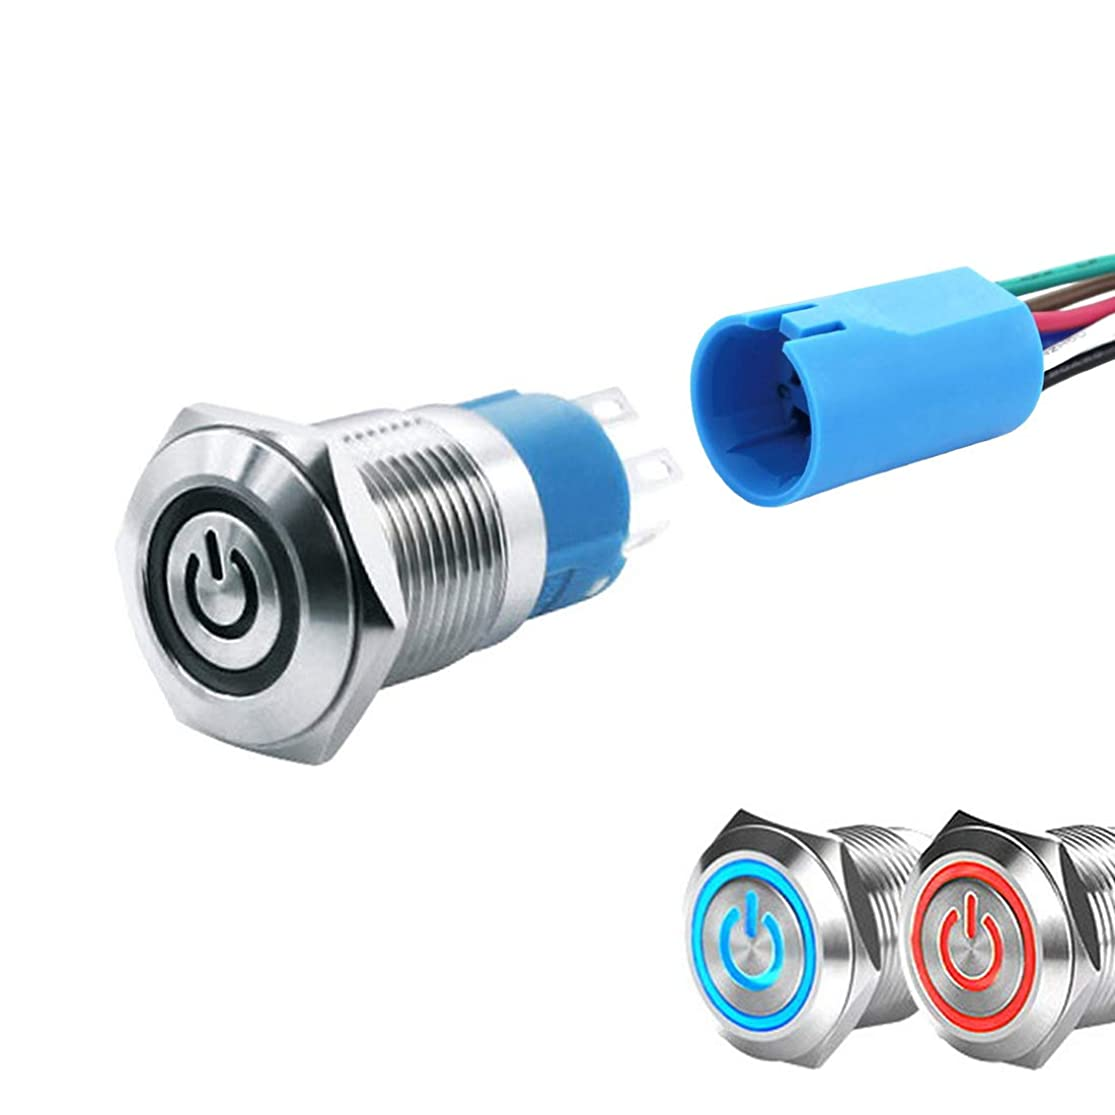 WerFamily 2 Colors Red Blue Power Indicator LED 16mm Latching Push Button Switch 1NO 1NC SPDT ON/OFF Waterproof Metal Round with Wire Socket Plug shzbbxaj5